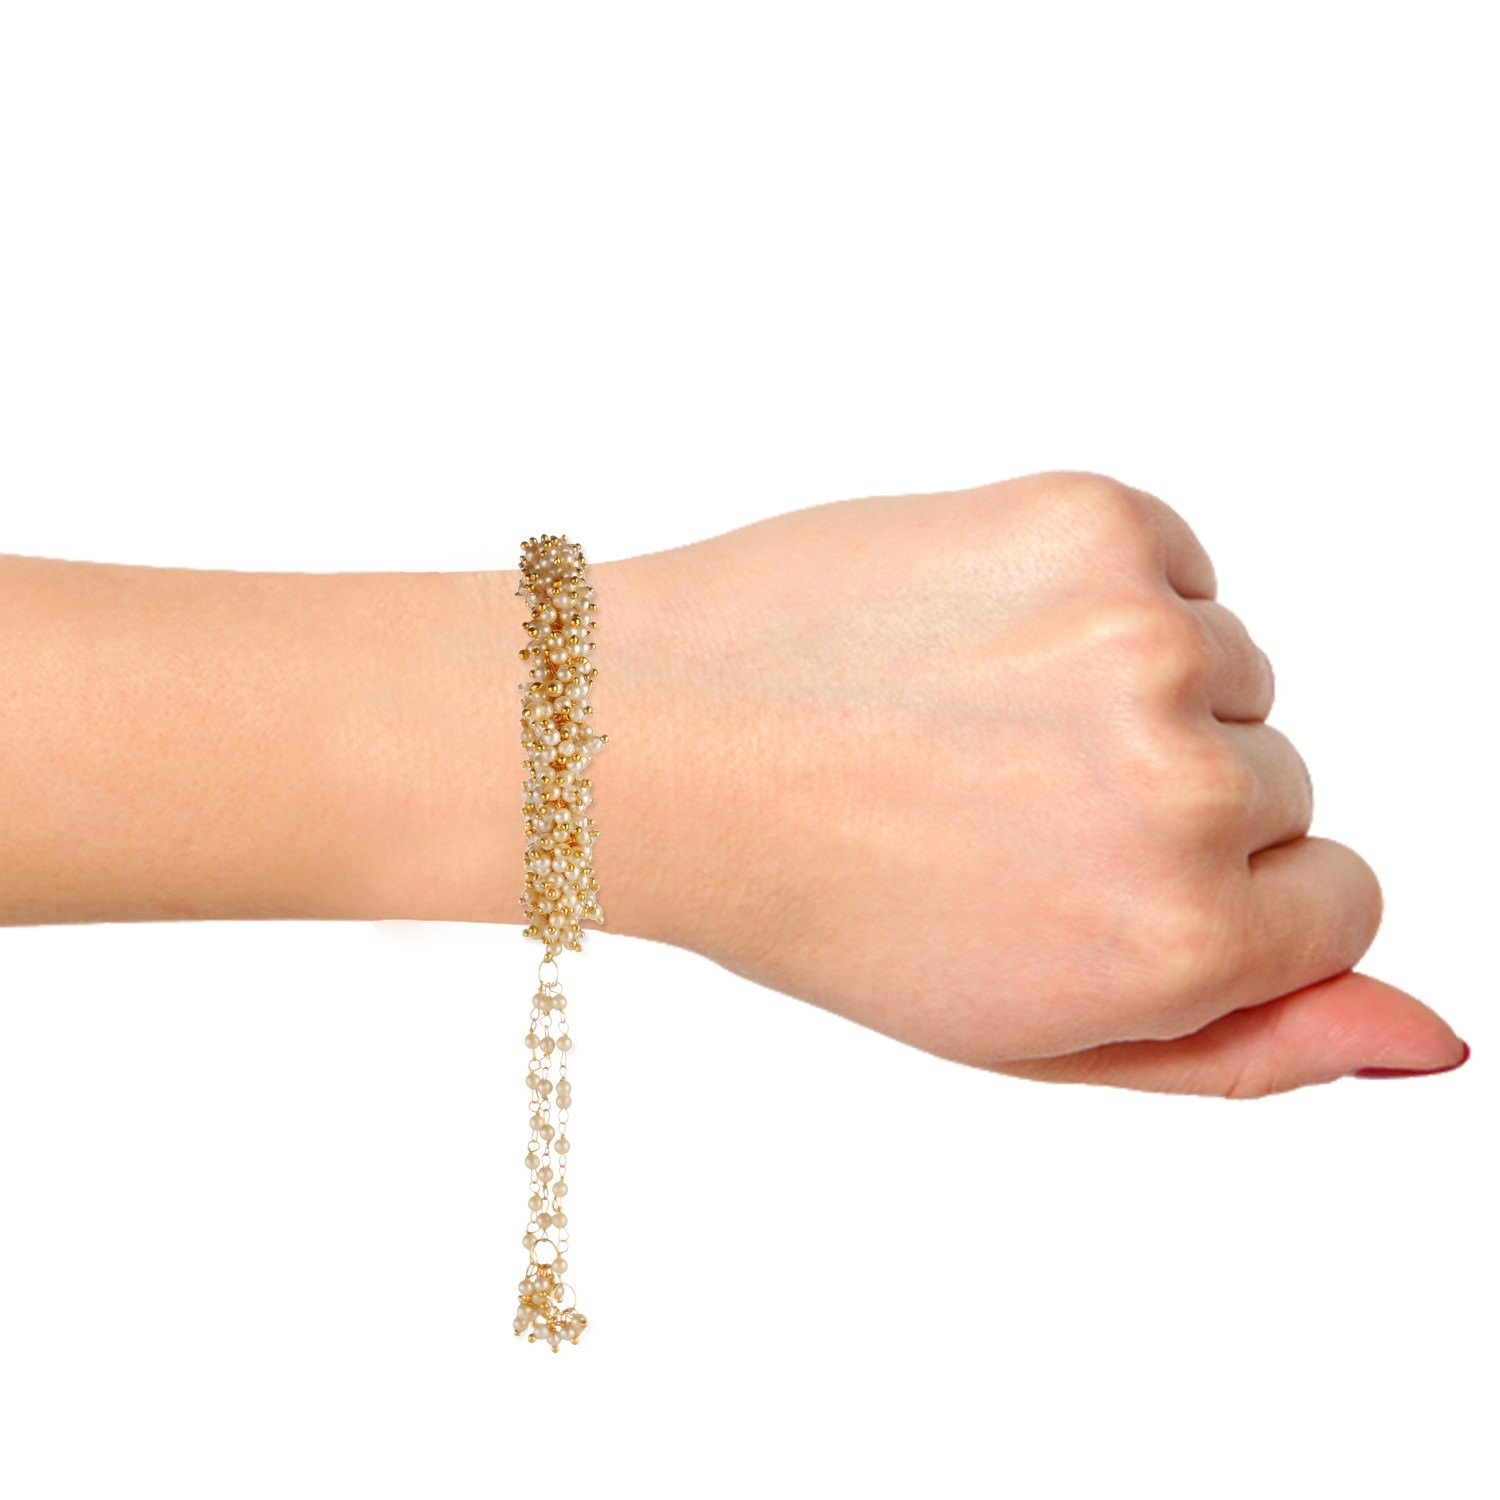 Efulgenz Fashion Jewelry Indian Bollywood 14 K Gold Plated Faux Pearl Beaded Cuff Style Bracelets Bangle Set with Tassels (2 Pieces) by Efulgenz (Image #3)